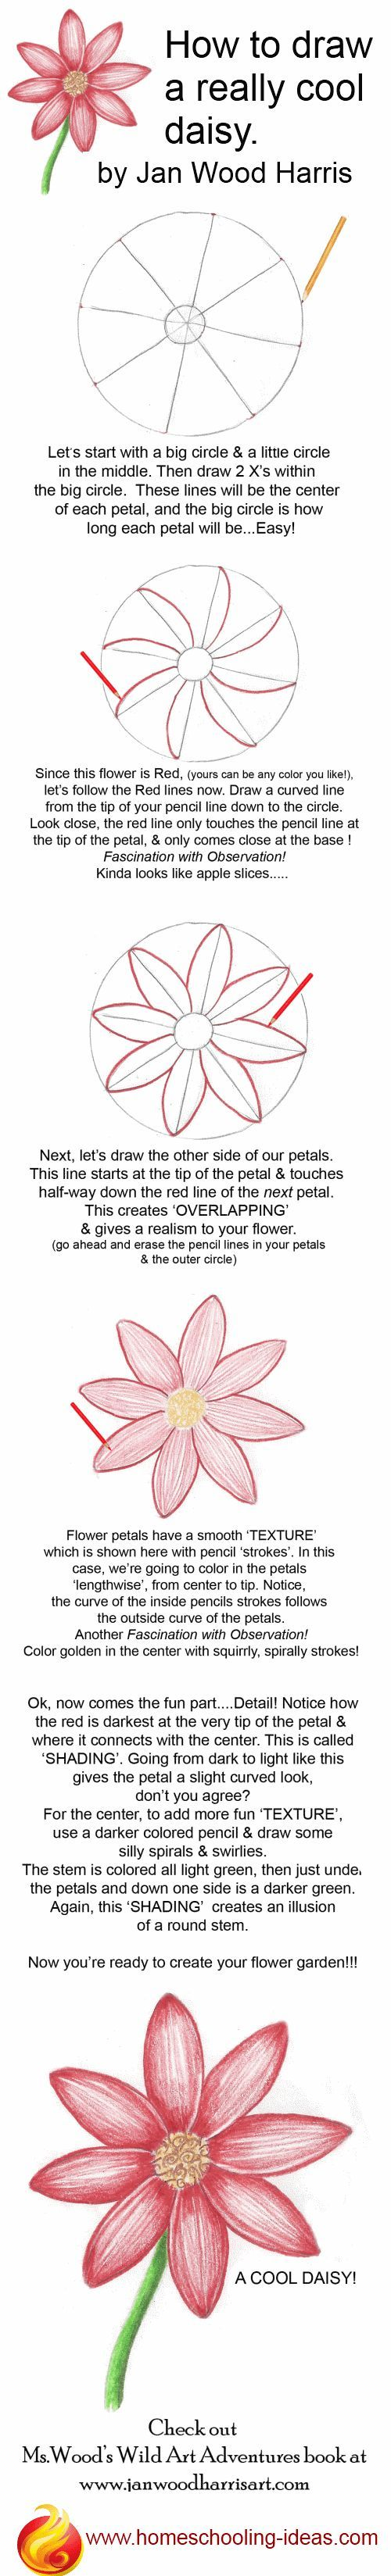 How To Draw A Cute Daisy Step By Easy Instructions You Could It As Hair Accessorie Even